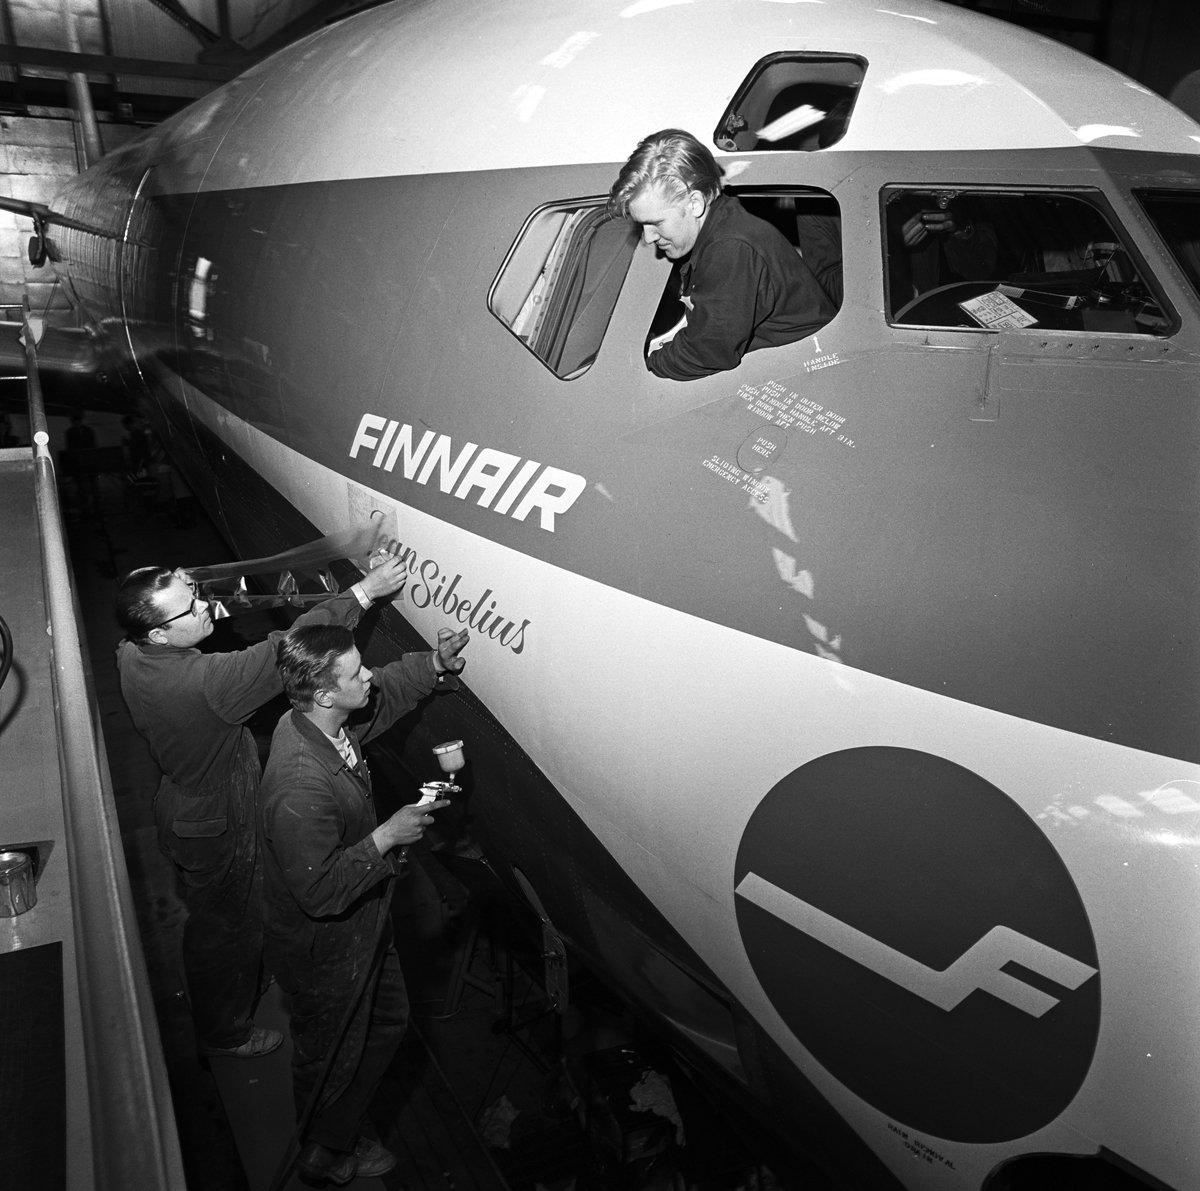 Today is the #birthday of Jean Sibelius, and the occasion is also celebrated as the Day of Finnish music. In the 70s one of our #DC8 was named after him. The 1st flight of this aircraft was to Tenerife on 19Dec 1975 #avgeek #aviation #jeansibelius #aviationhistory